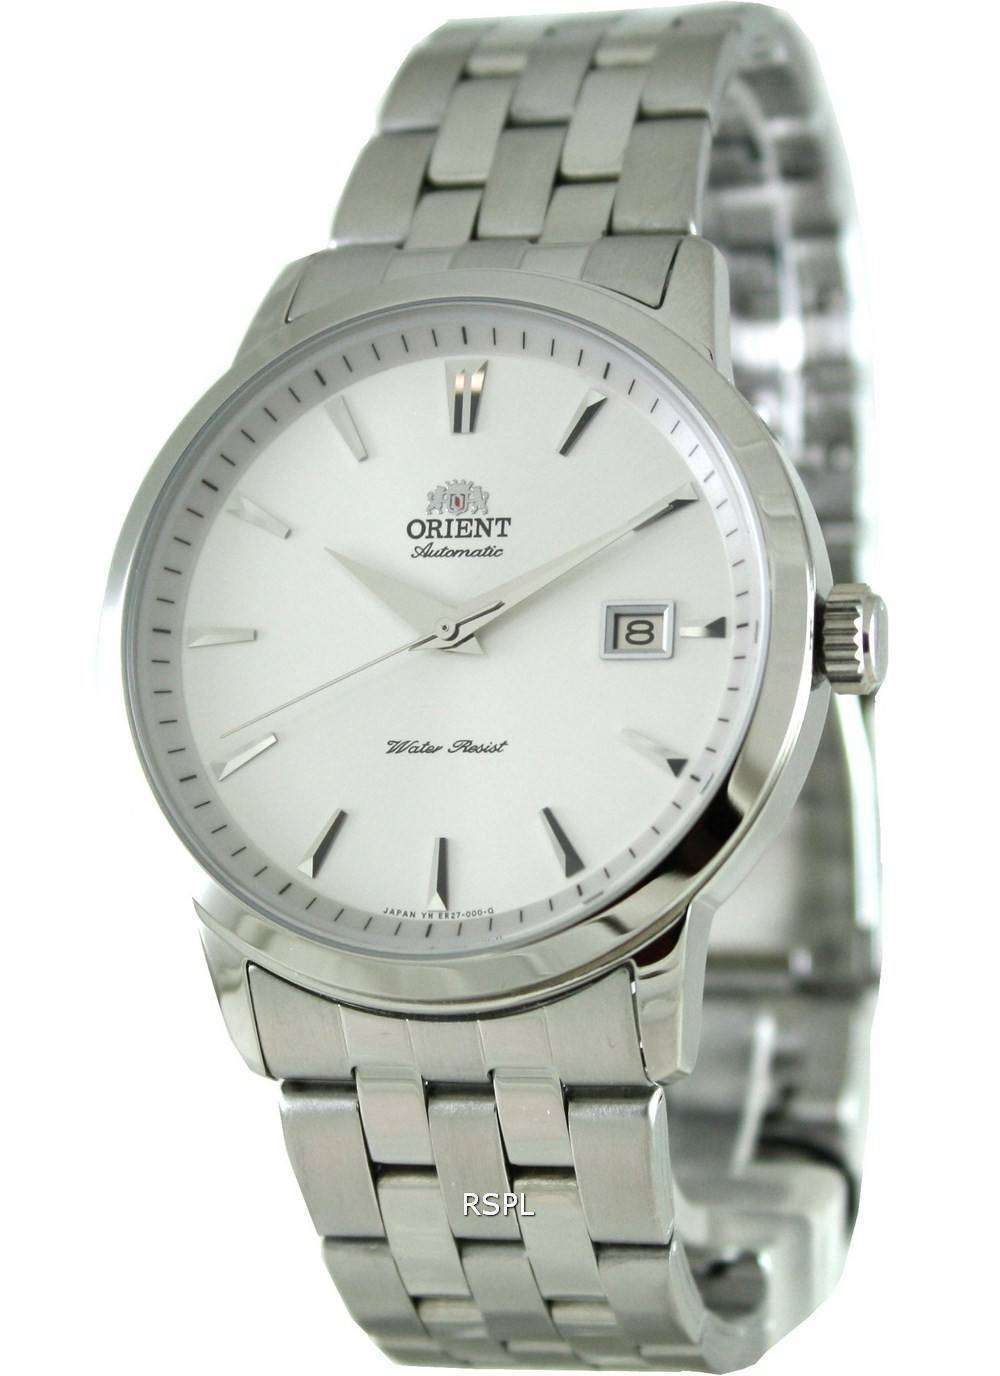 Orient Automatic ER2700AW Men's Watch